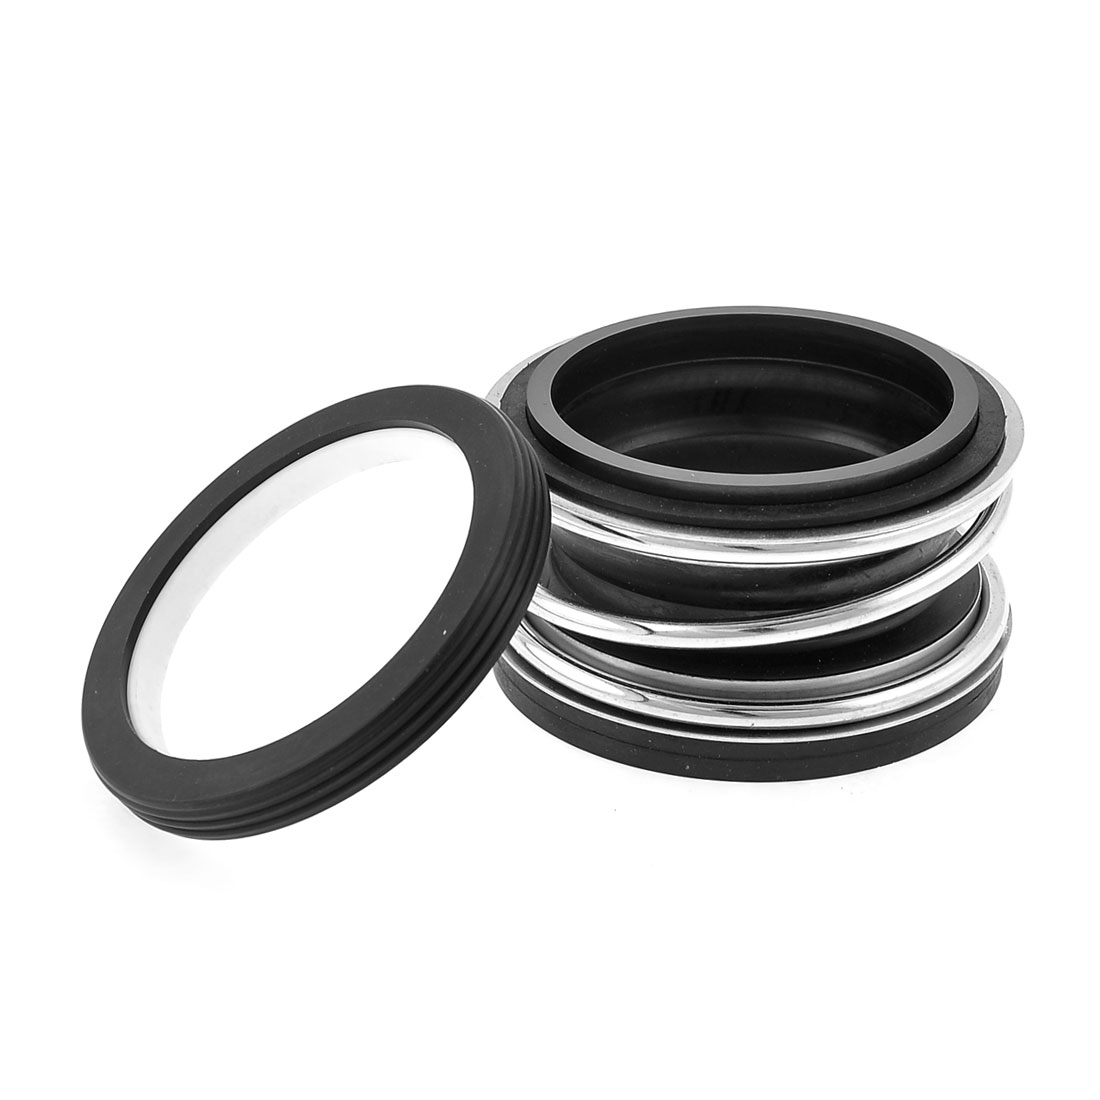 MB2-60 Ceramic Rotary Ring Rubber Bellows Pump Mechanical Seal 60mm